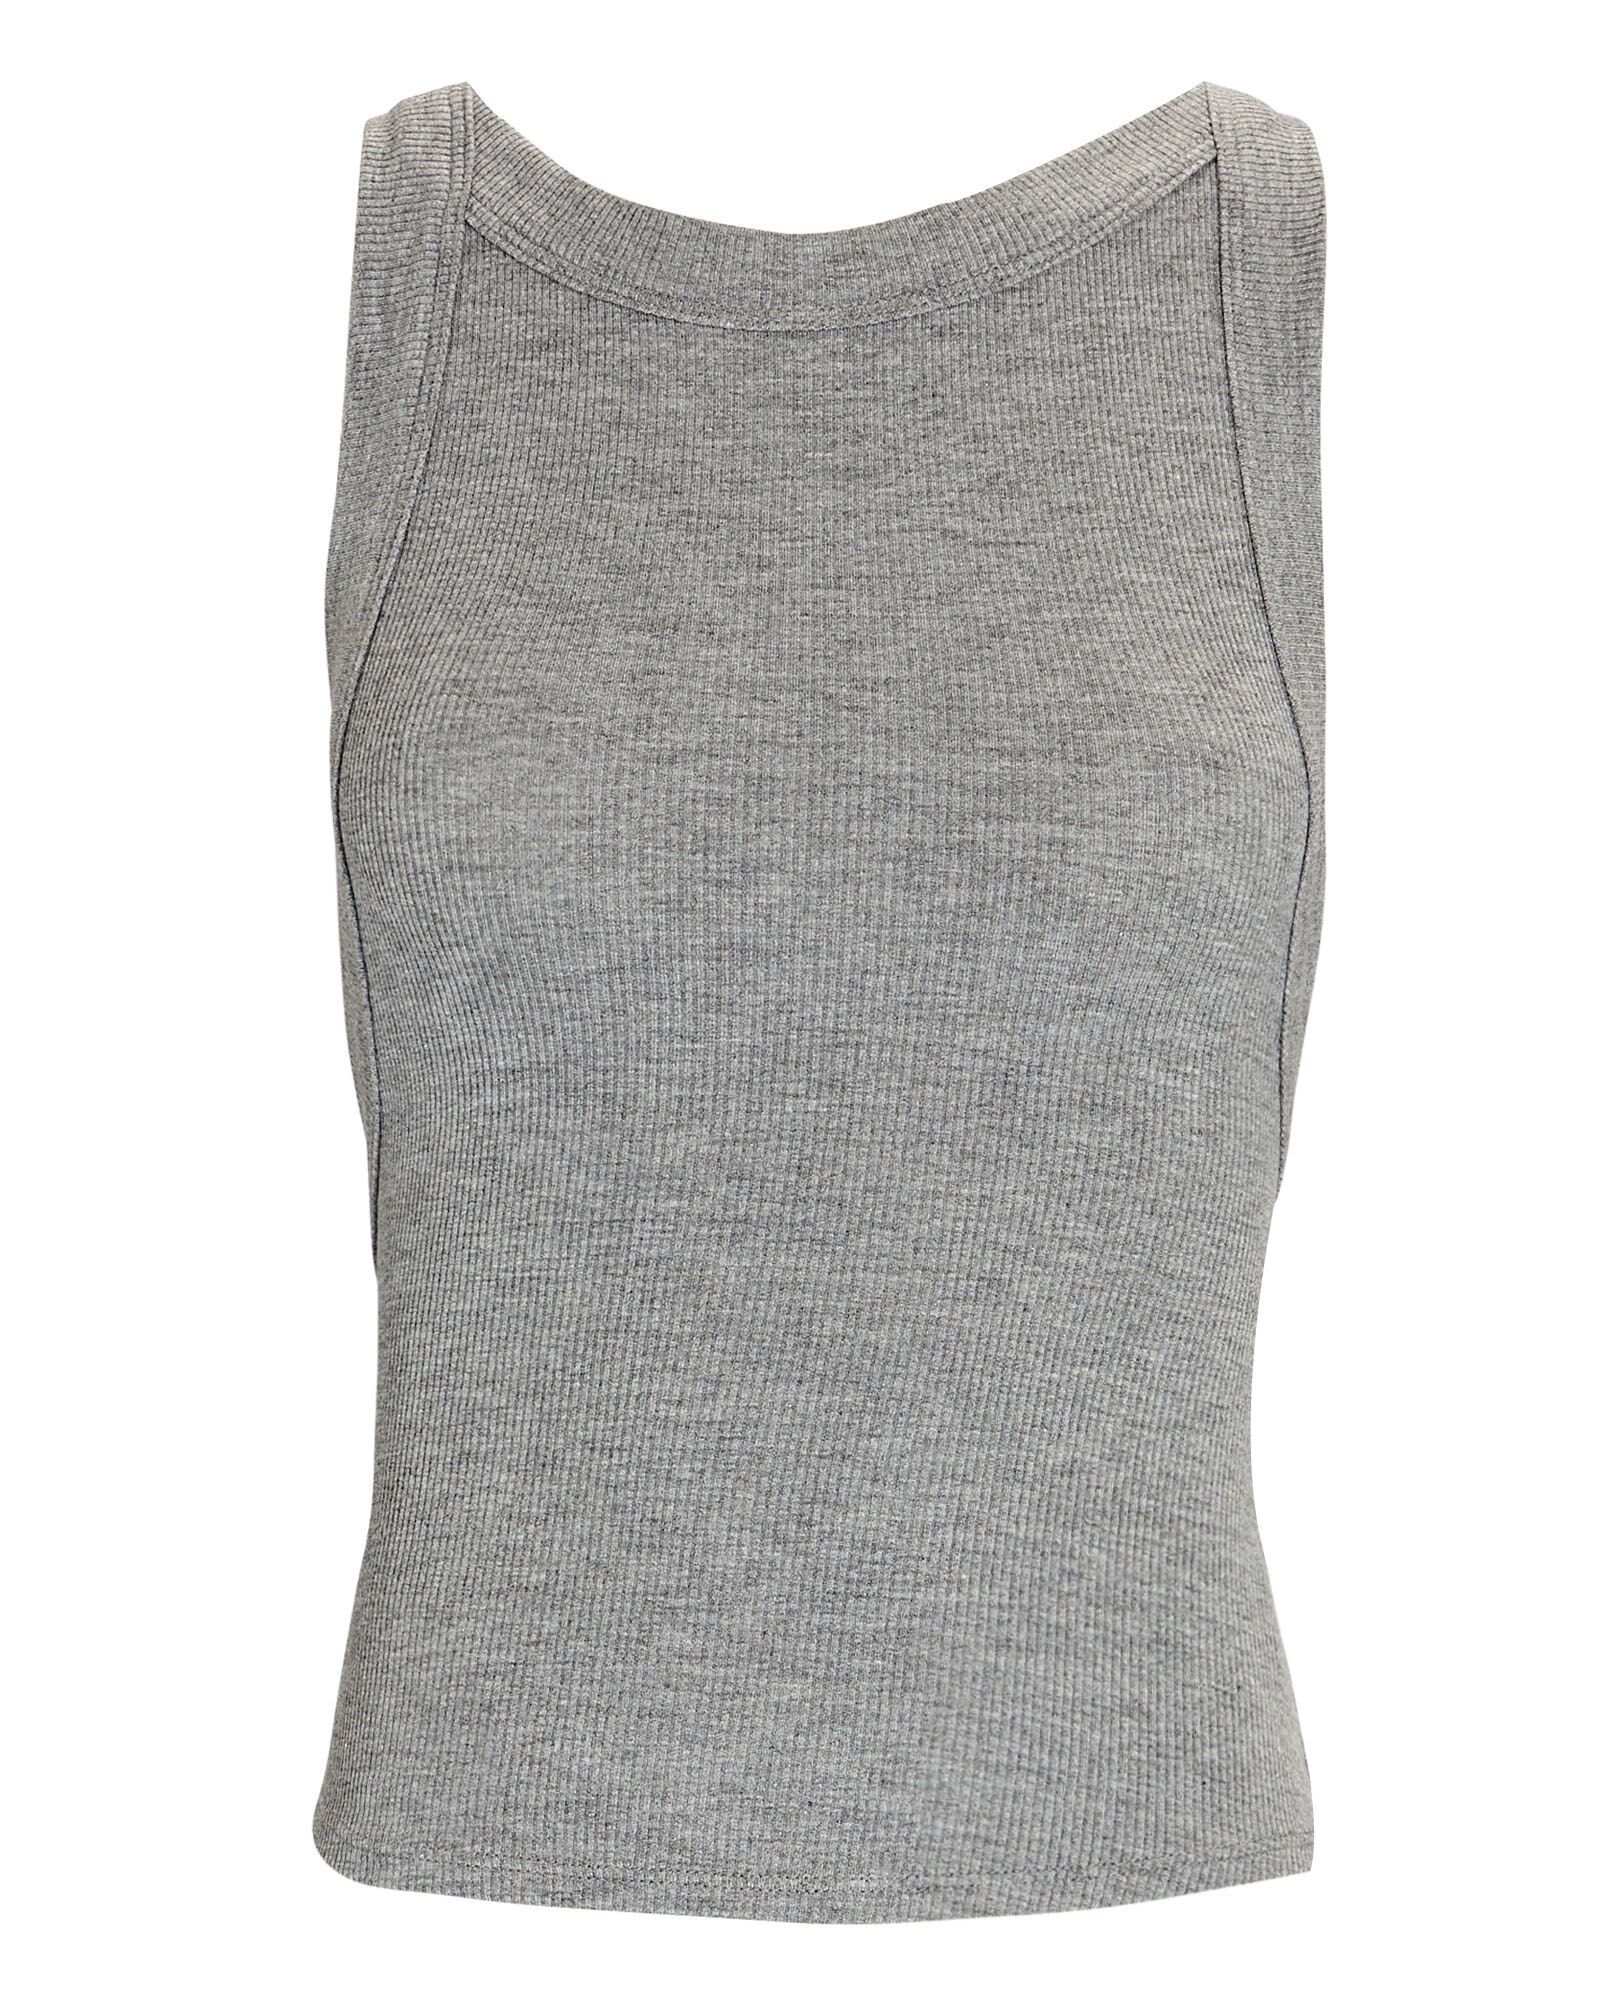 Ximeno High Neck Tank Top, GREY, hi-res